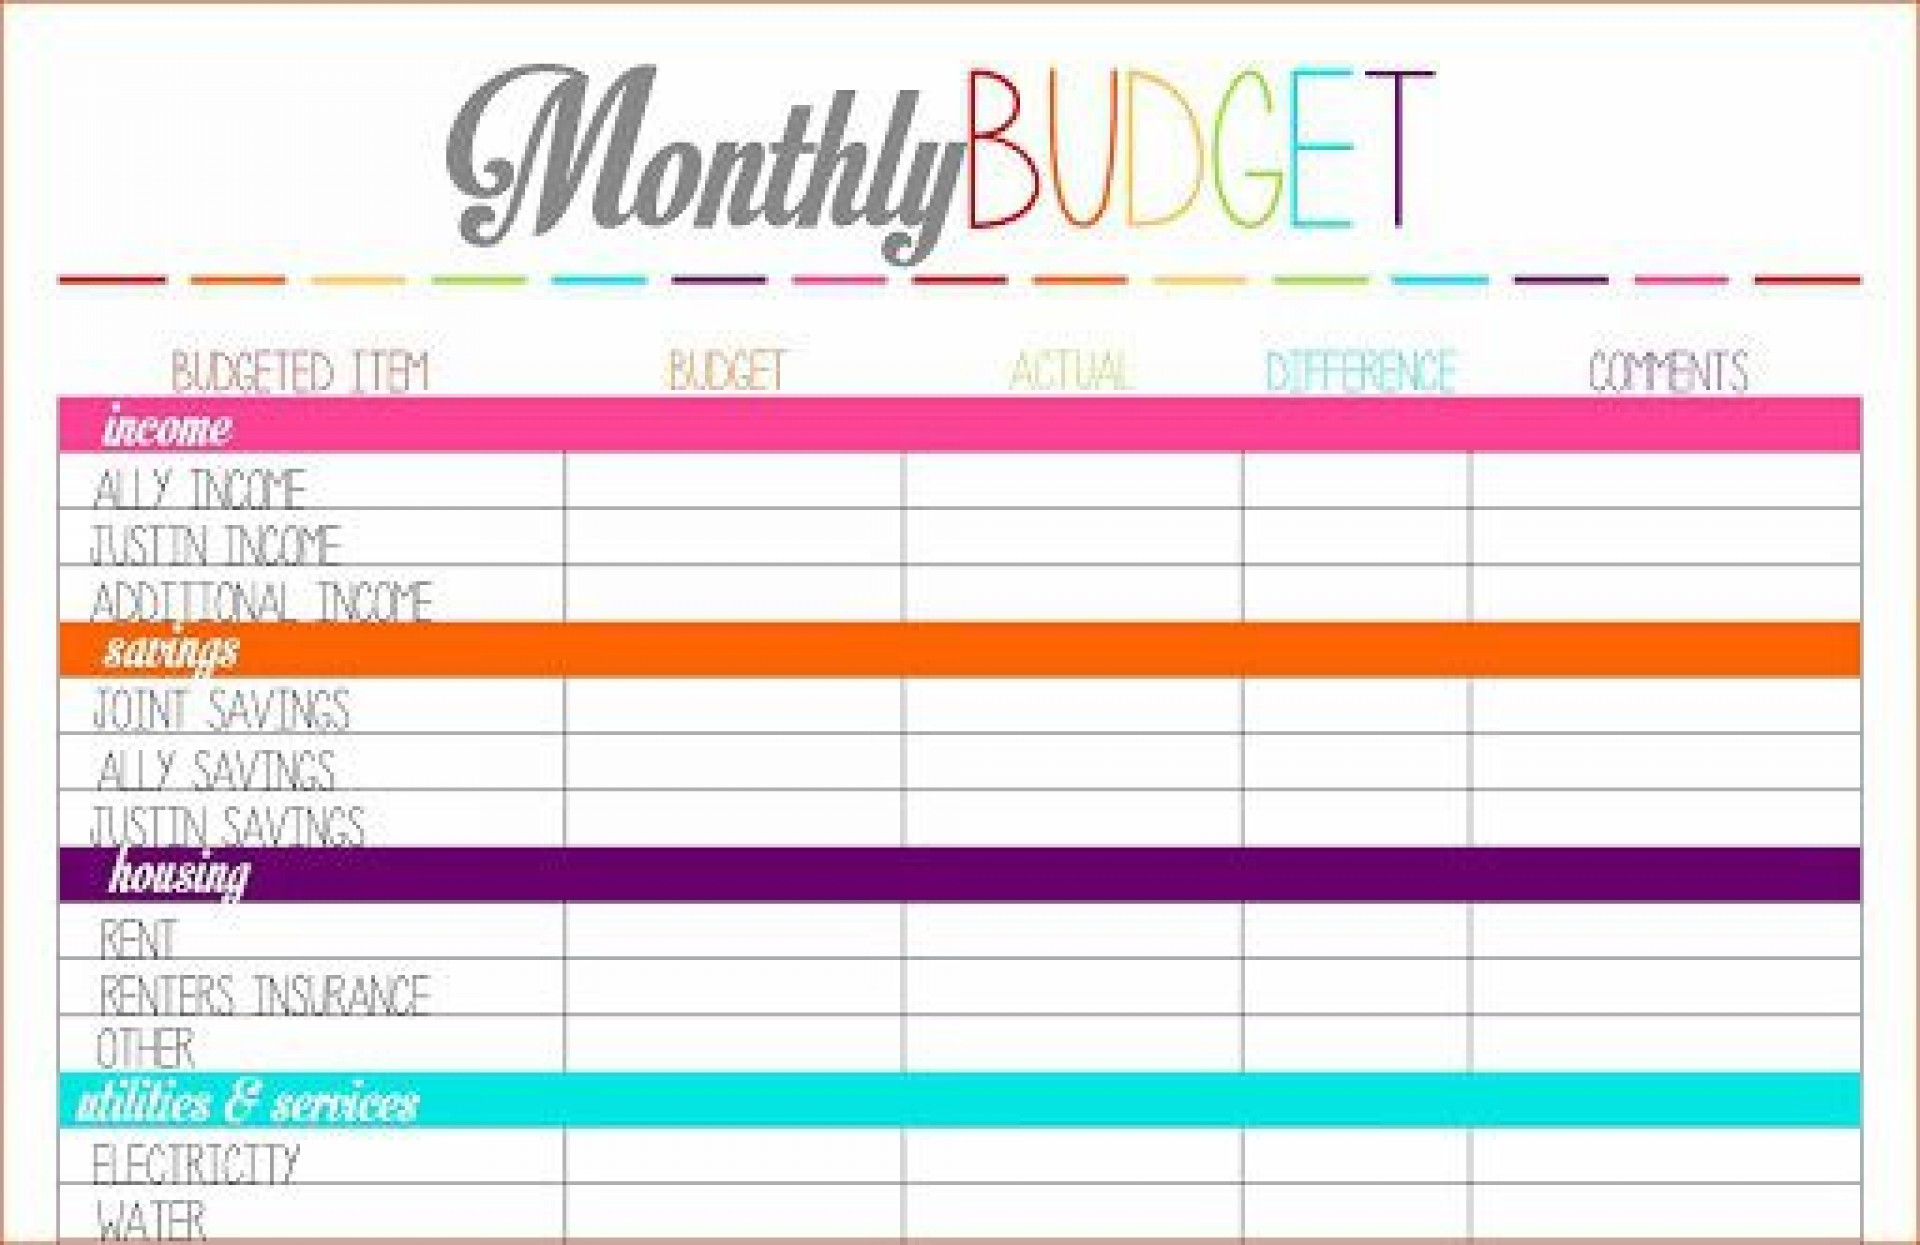 010 Unique Free Monthly Budget Template Philippine High Definition  Philippines1920